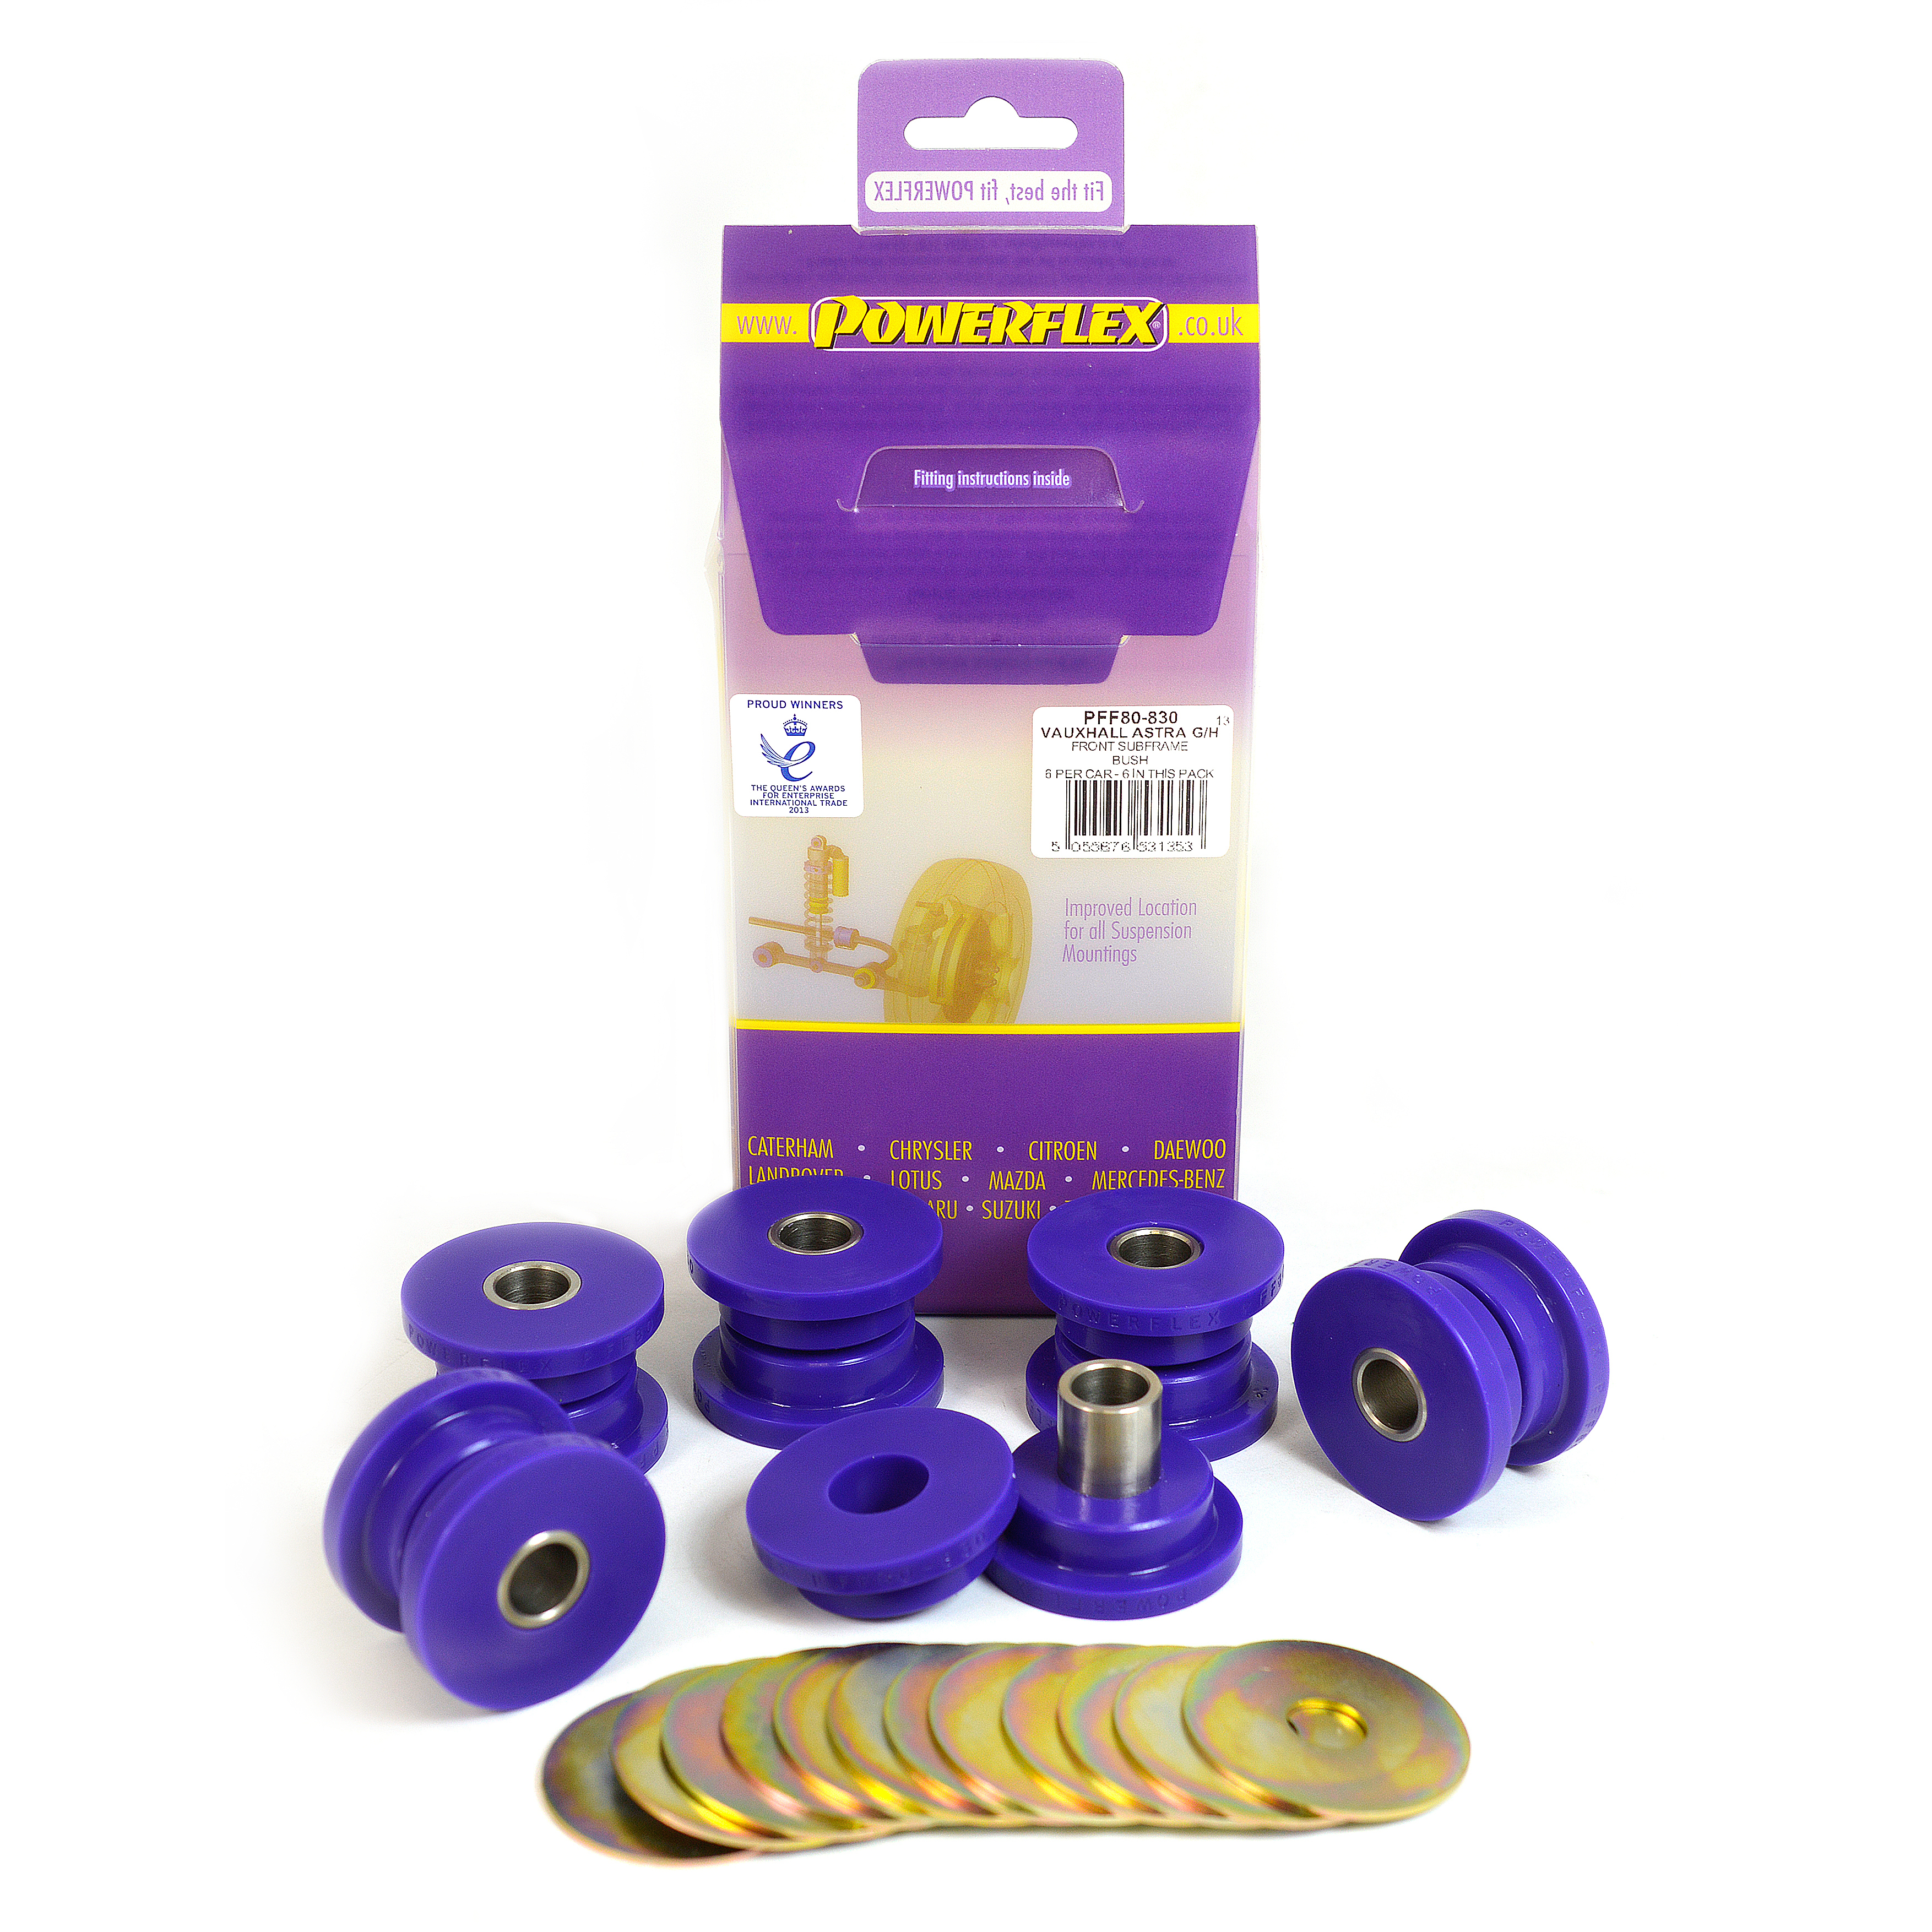 December 2014 The Courtenay Sport Blog Where Is Fuse Box Astra Mk4 Engine Bed Bushes Purple Series